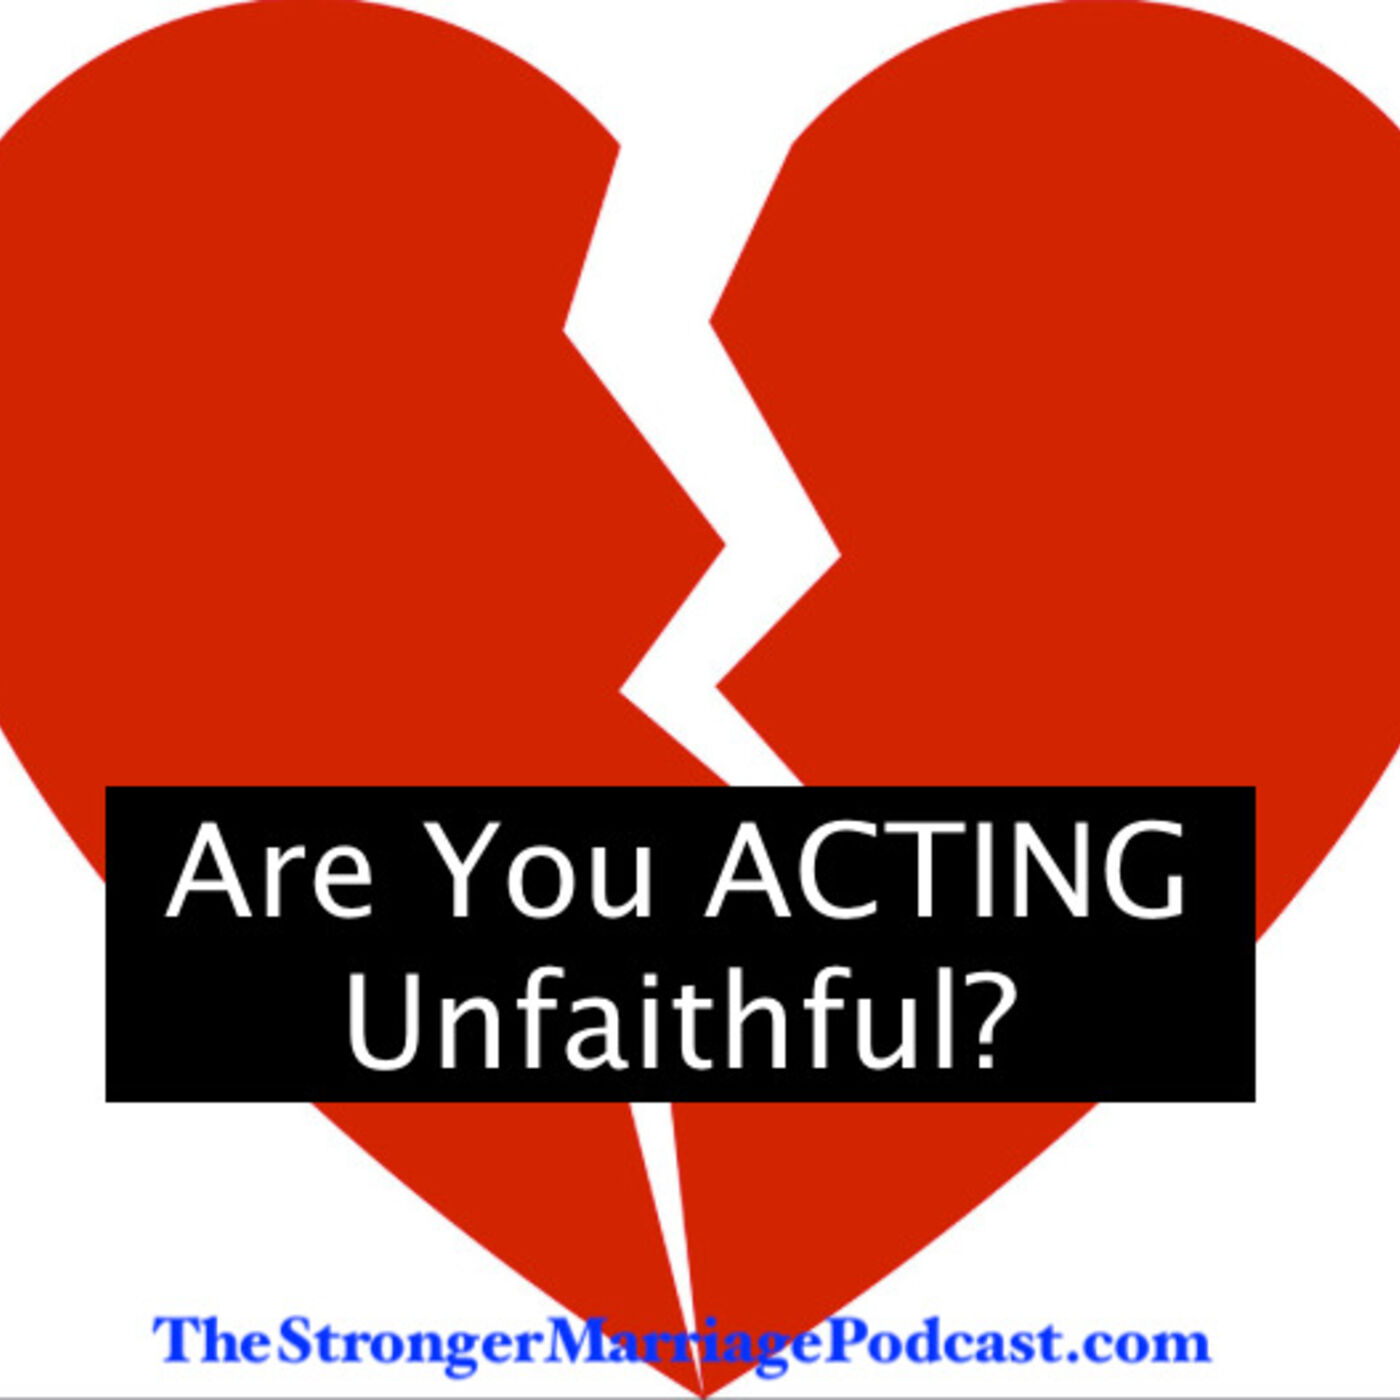 9 WAYS YOU MAY BE ACTING UNFAITHFUL TOWARDS YOUR SPOUSE